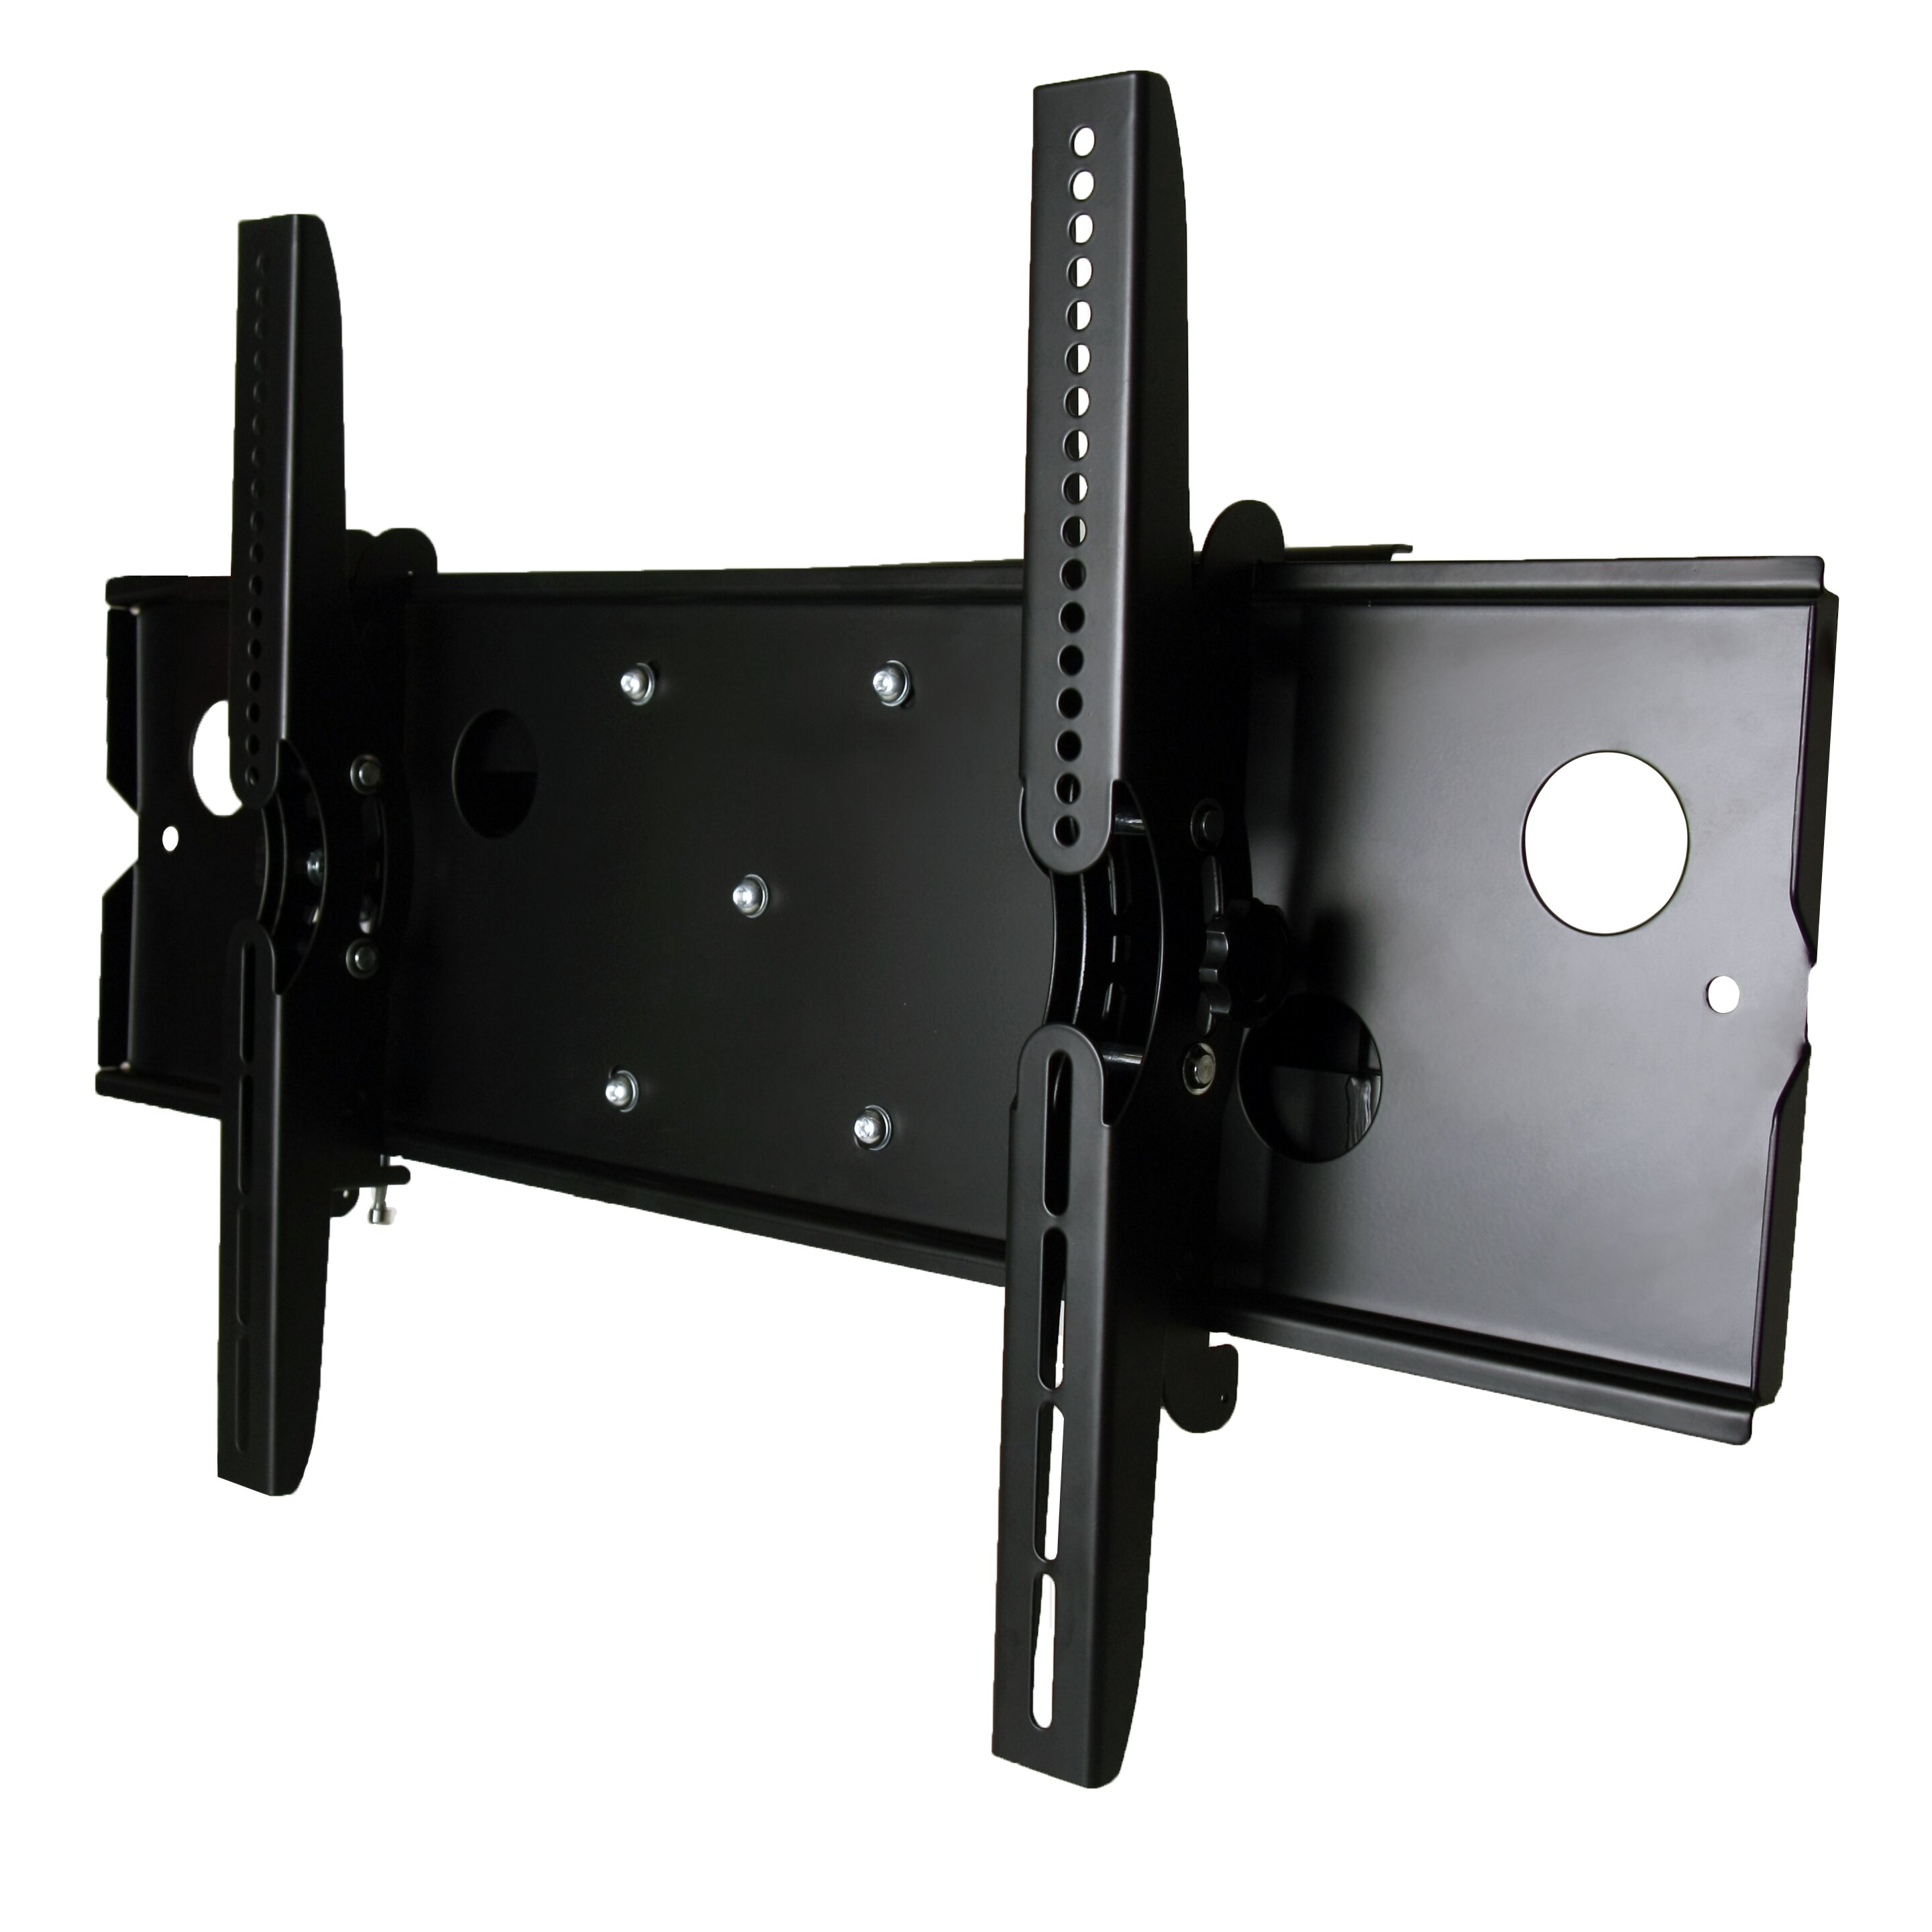 Mount It Dual Arm Articulating Tv Wall Mount For 32 60